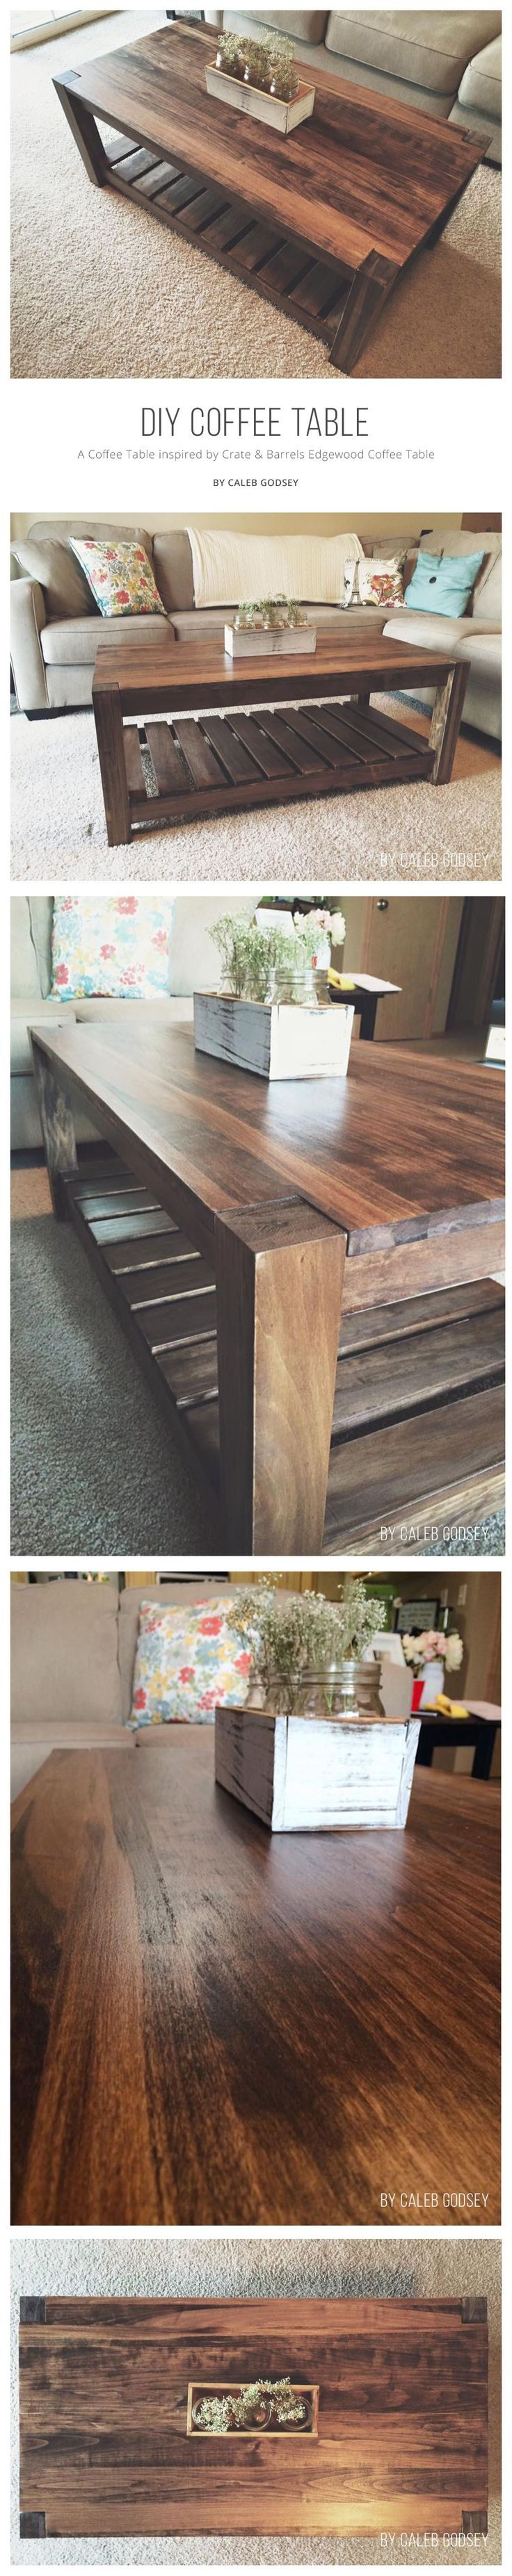 A Beautiful Aspen And Pine Diy Coffee Table Inspired By